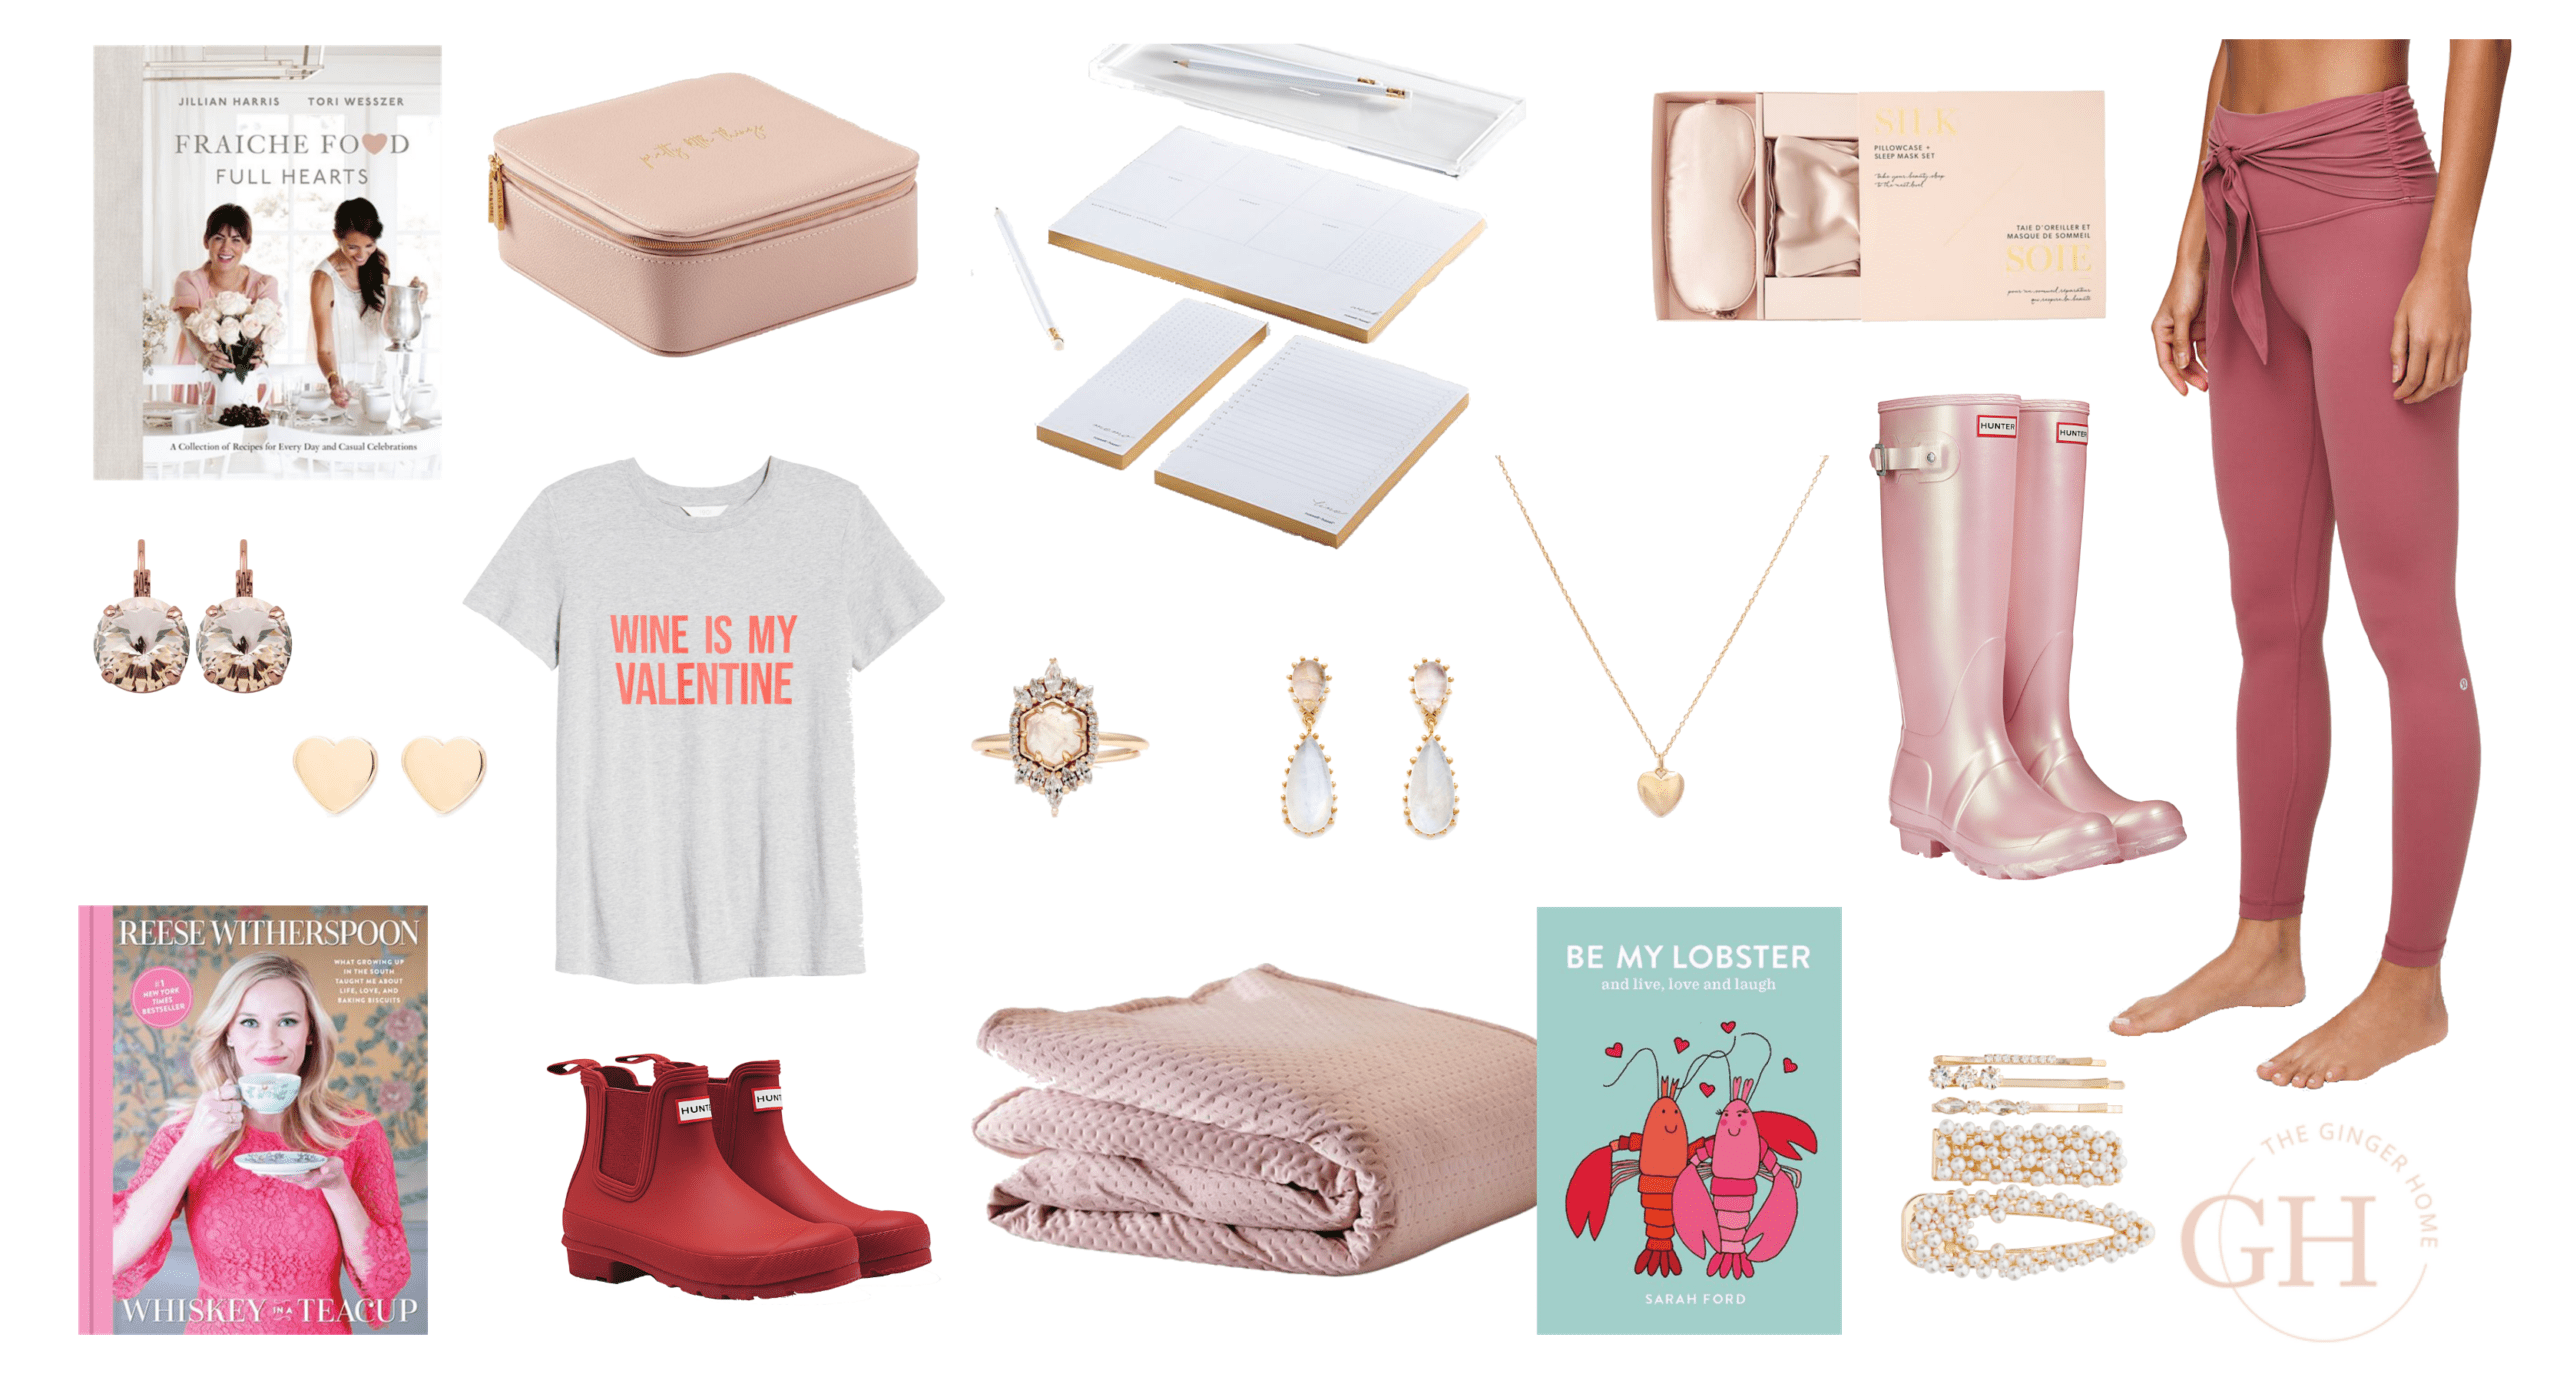 The best gifts for her this Valentine's Day 2020